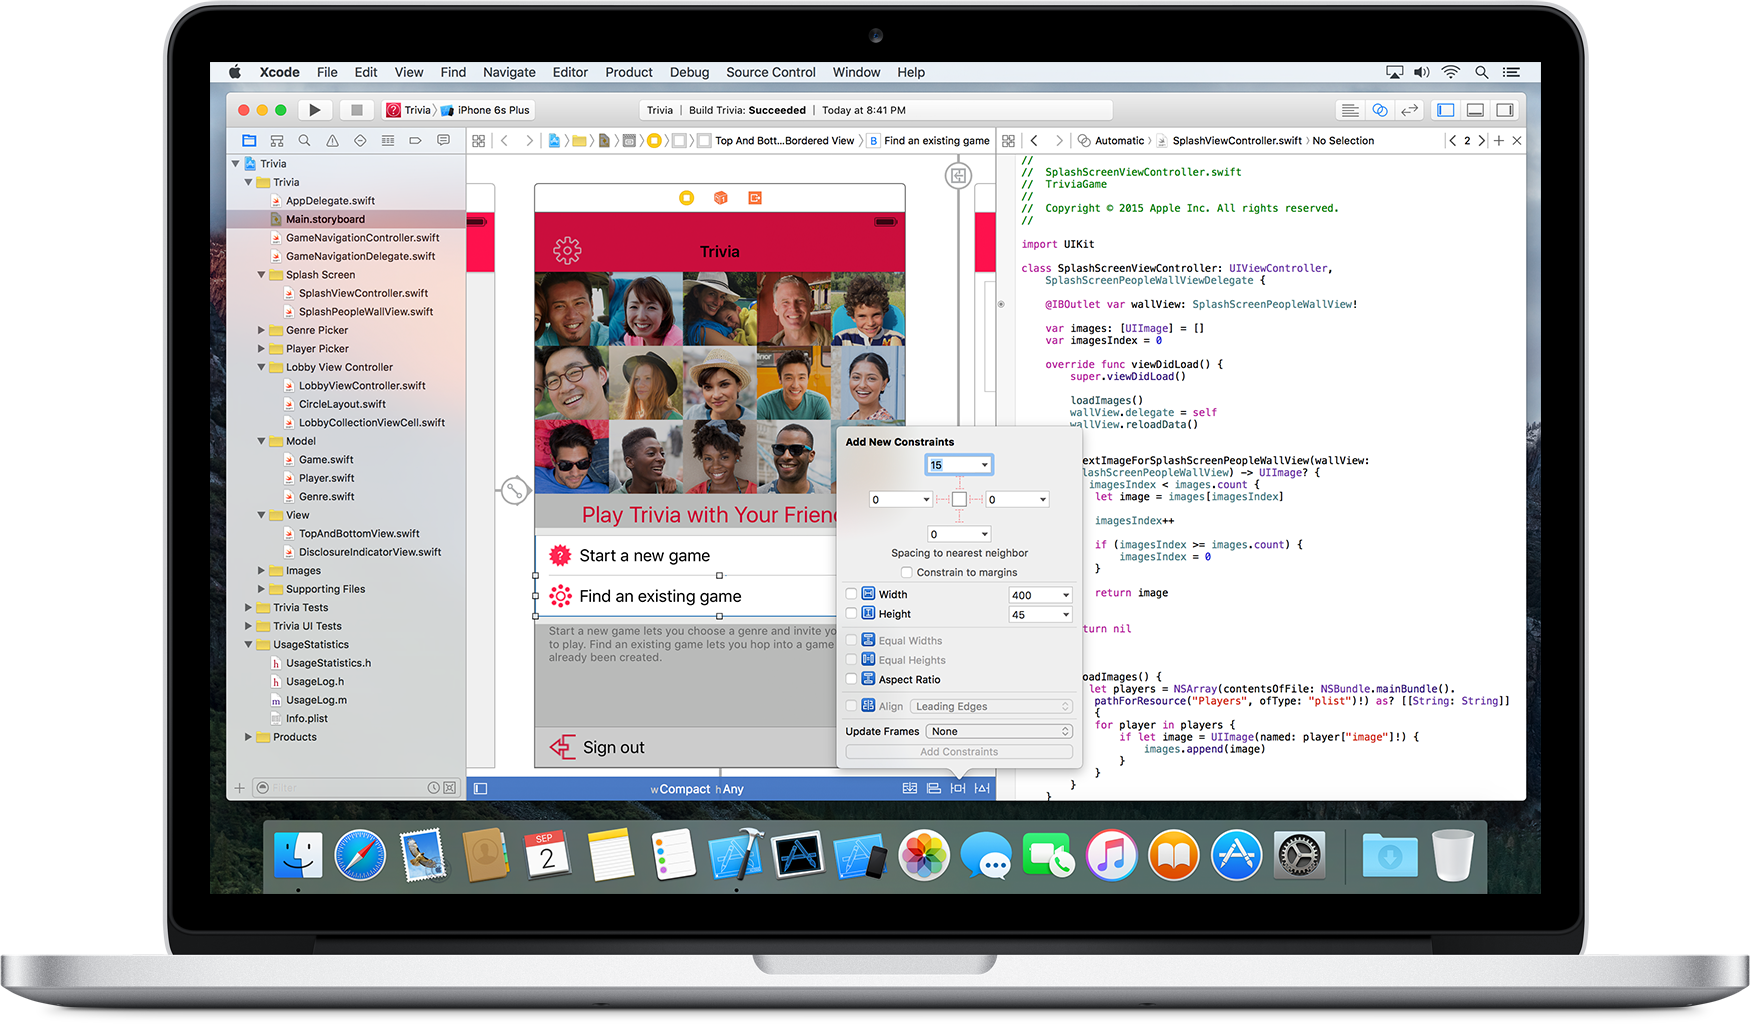 Xcode Review - Slant